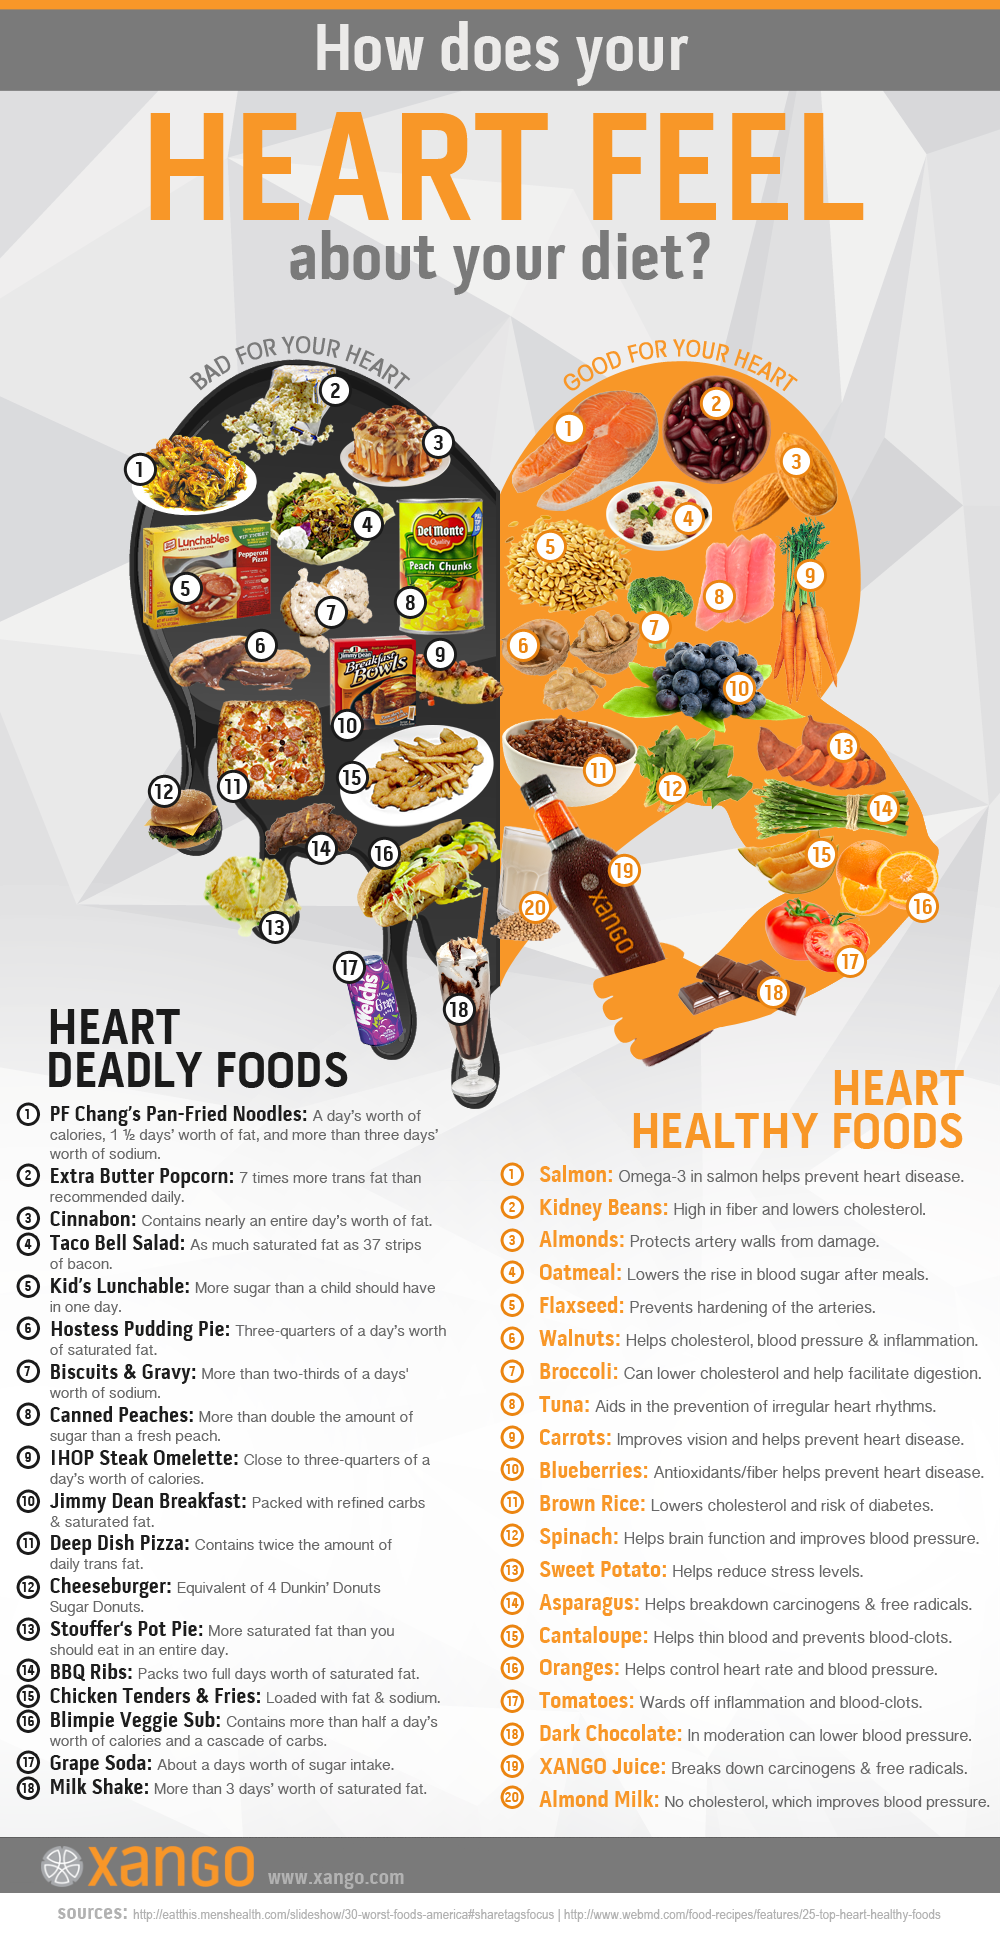 Food and good health - 10 Incredibly Tasty Heart Healthy Foods